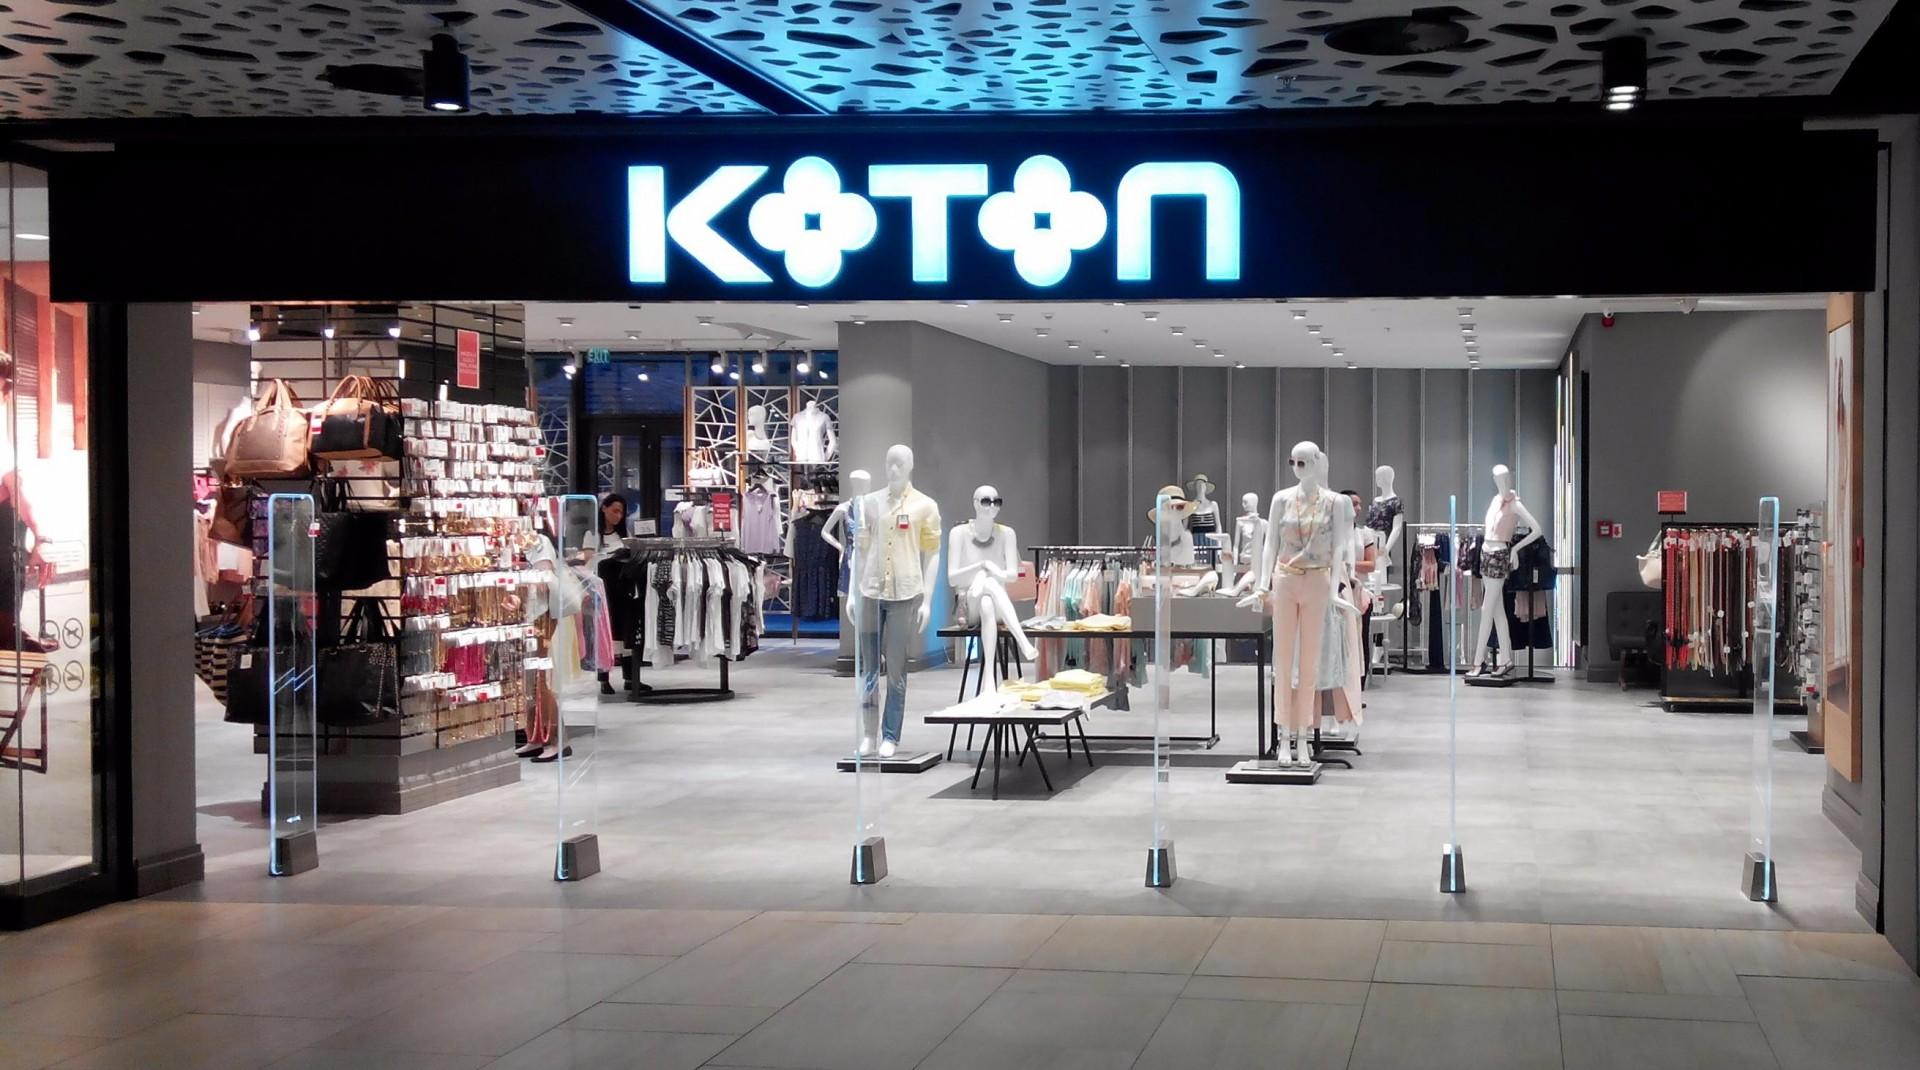 the large international chain of clothing stores koton